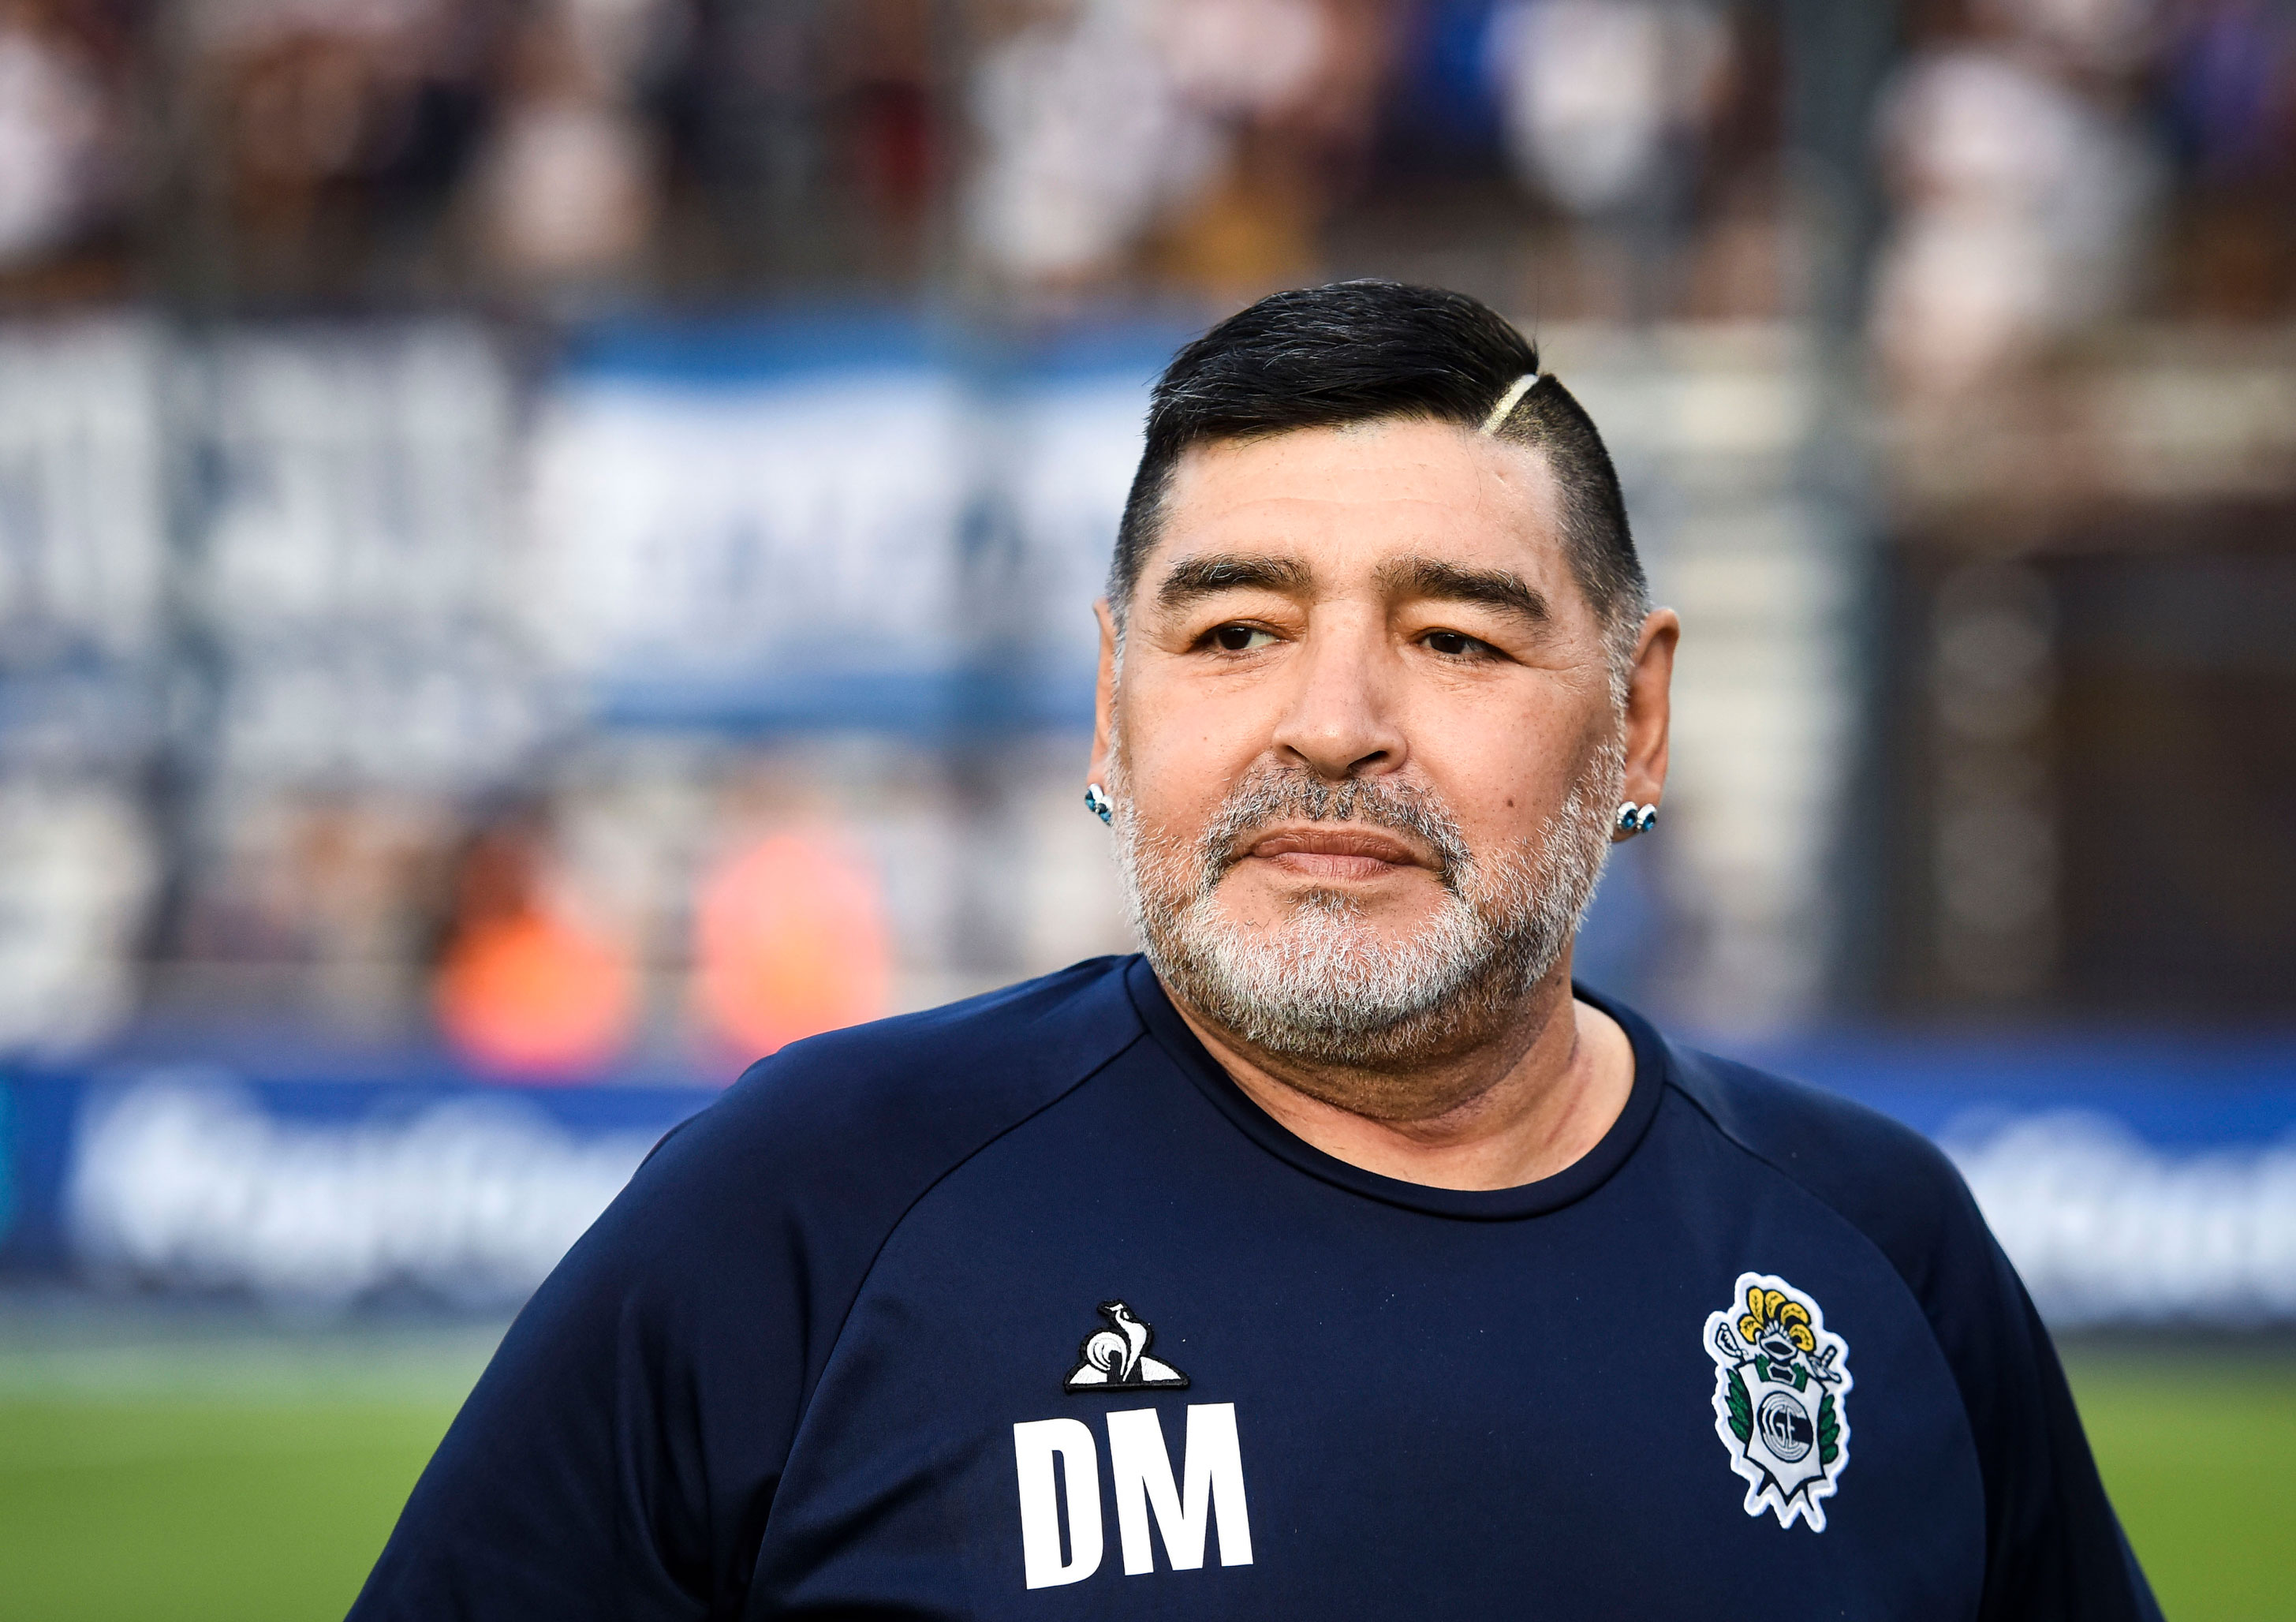 Diego Maradona dies after suffering heart failure